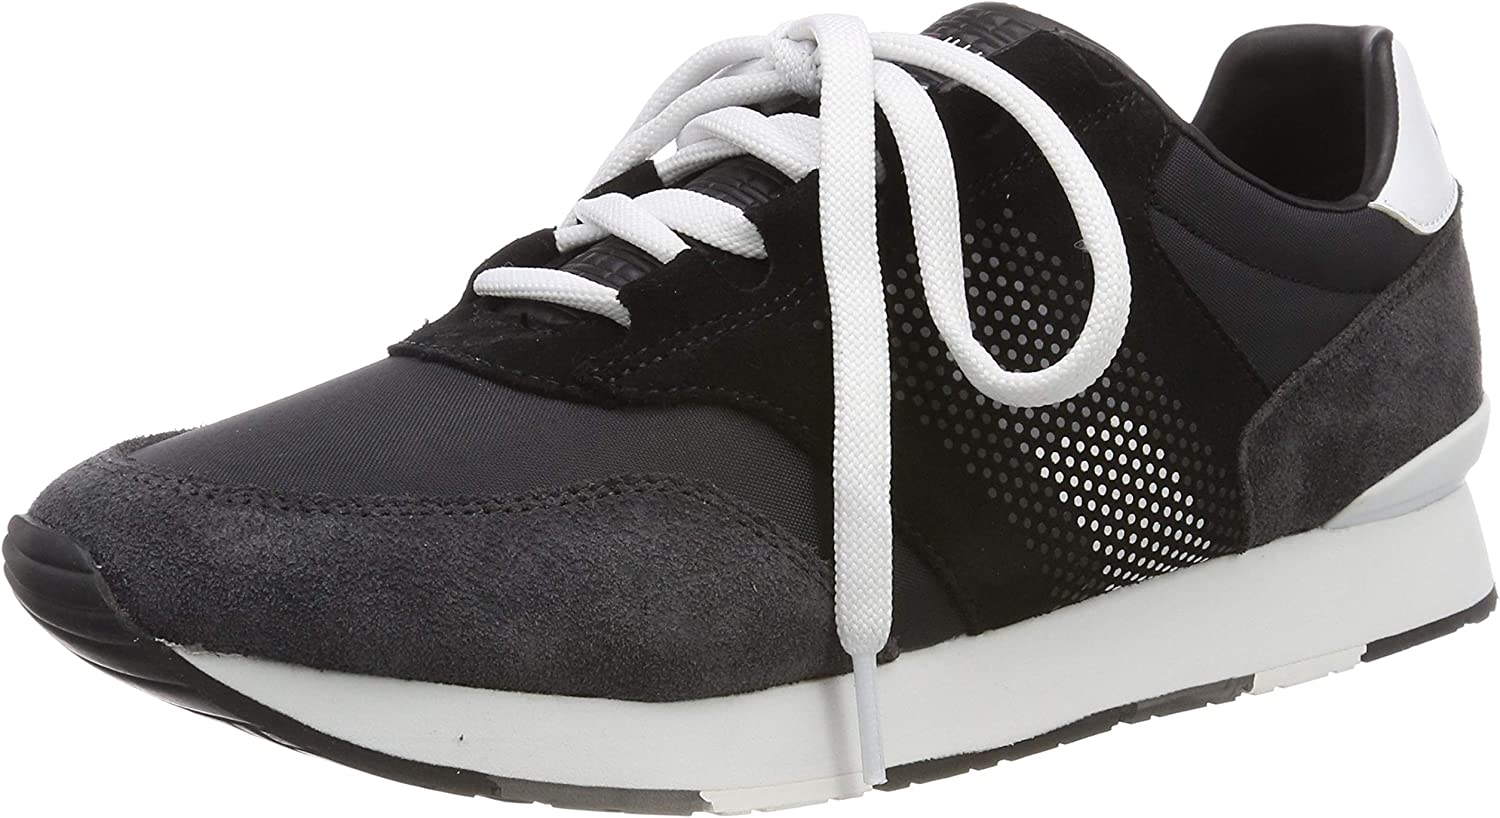 Tommy Hilfiger Corporate Material Mix Runner, Zapatillas para Hombre